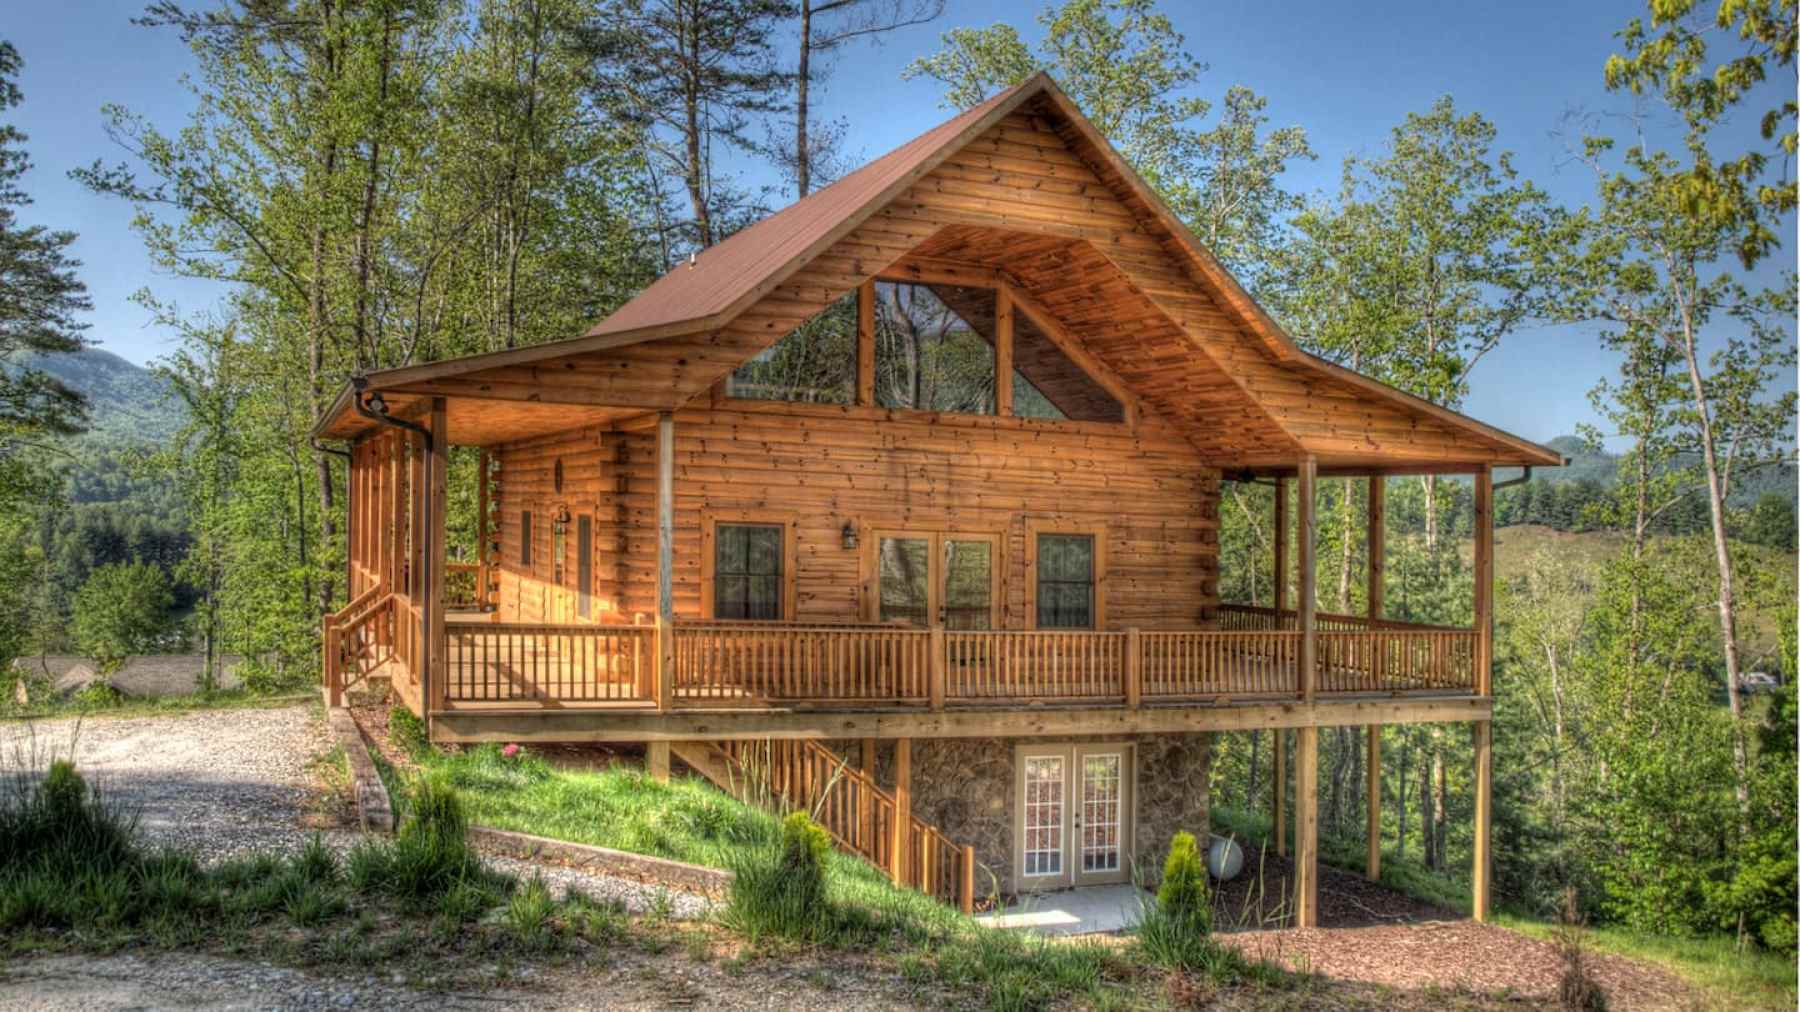 Average Cost Per Square Foot To Build A Timber Frame House